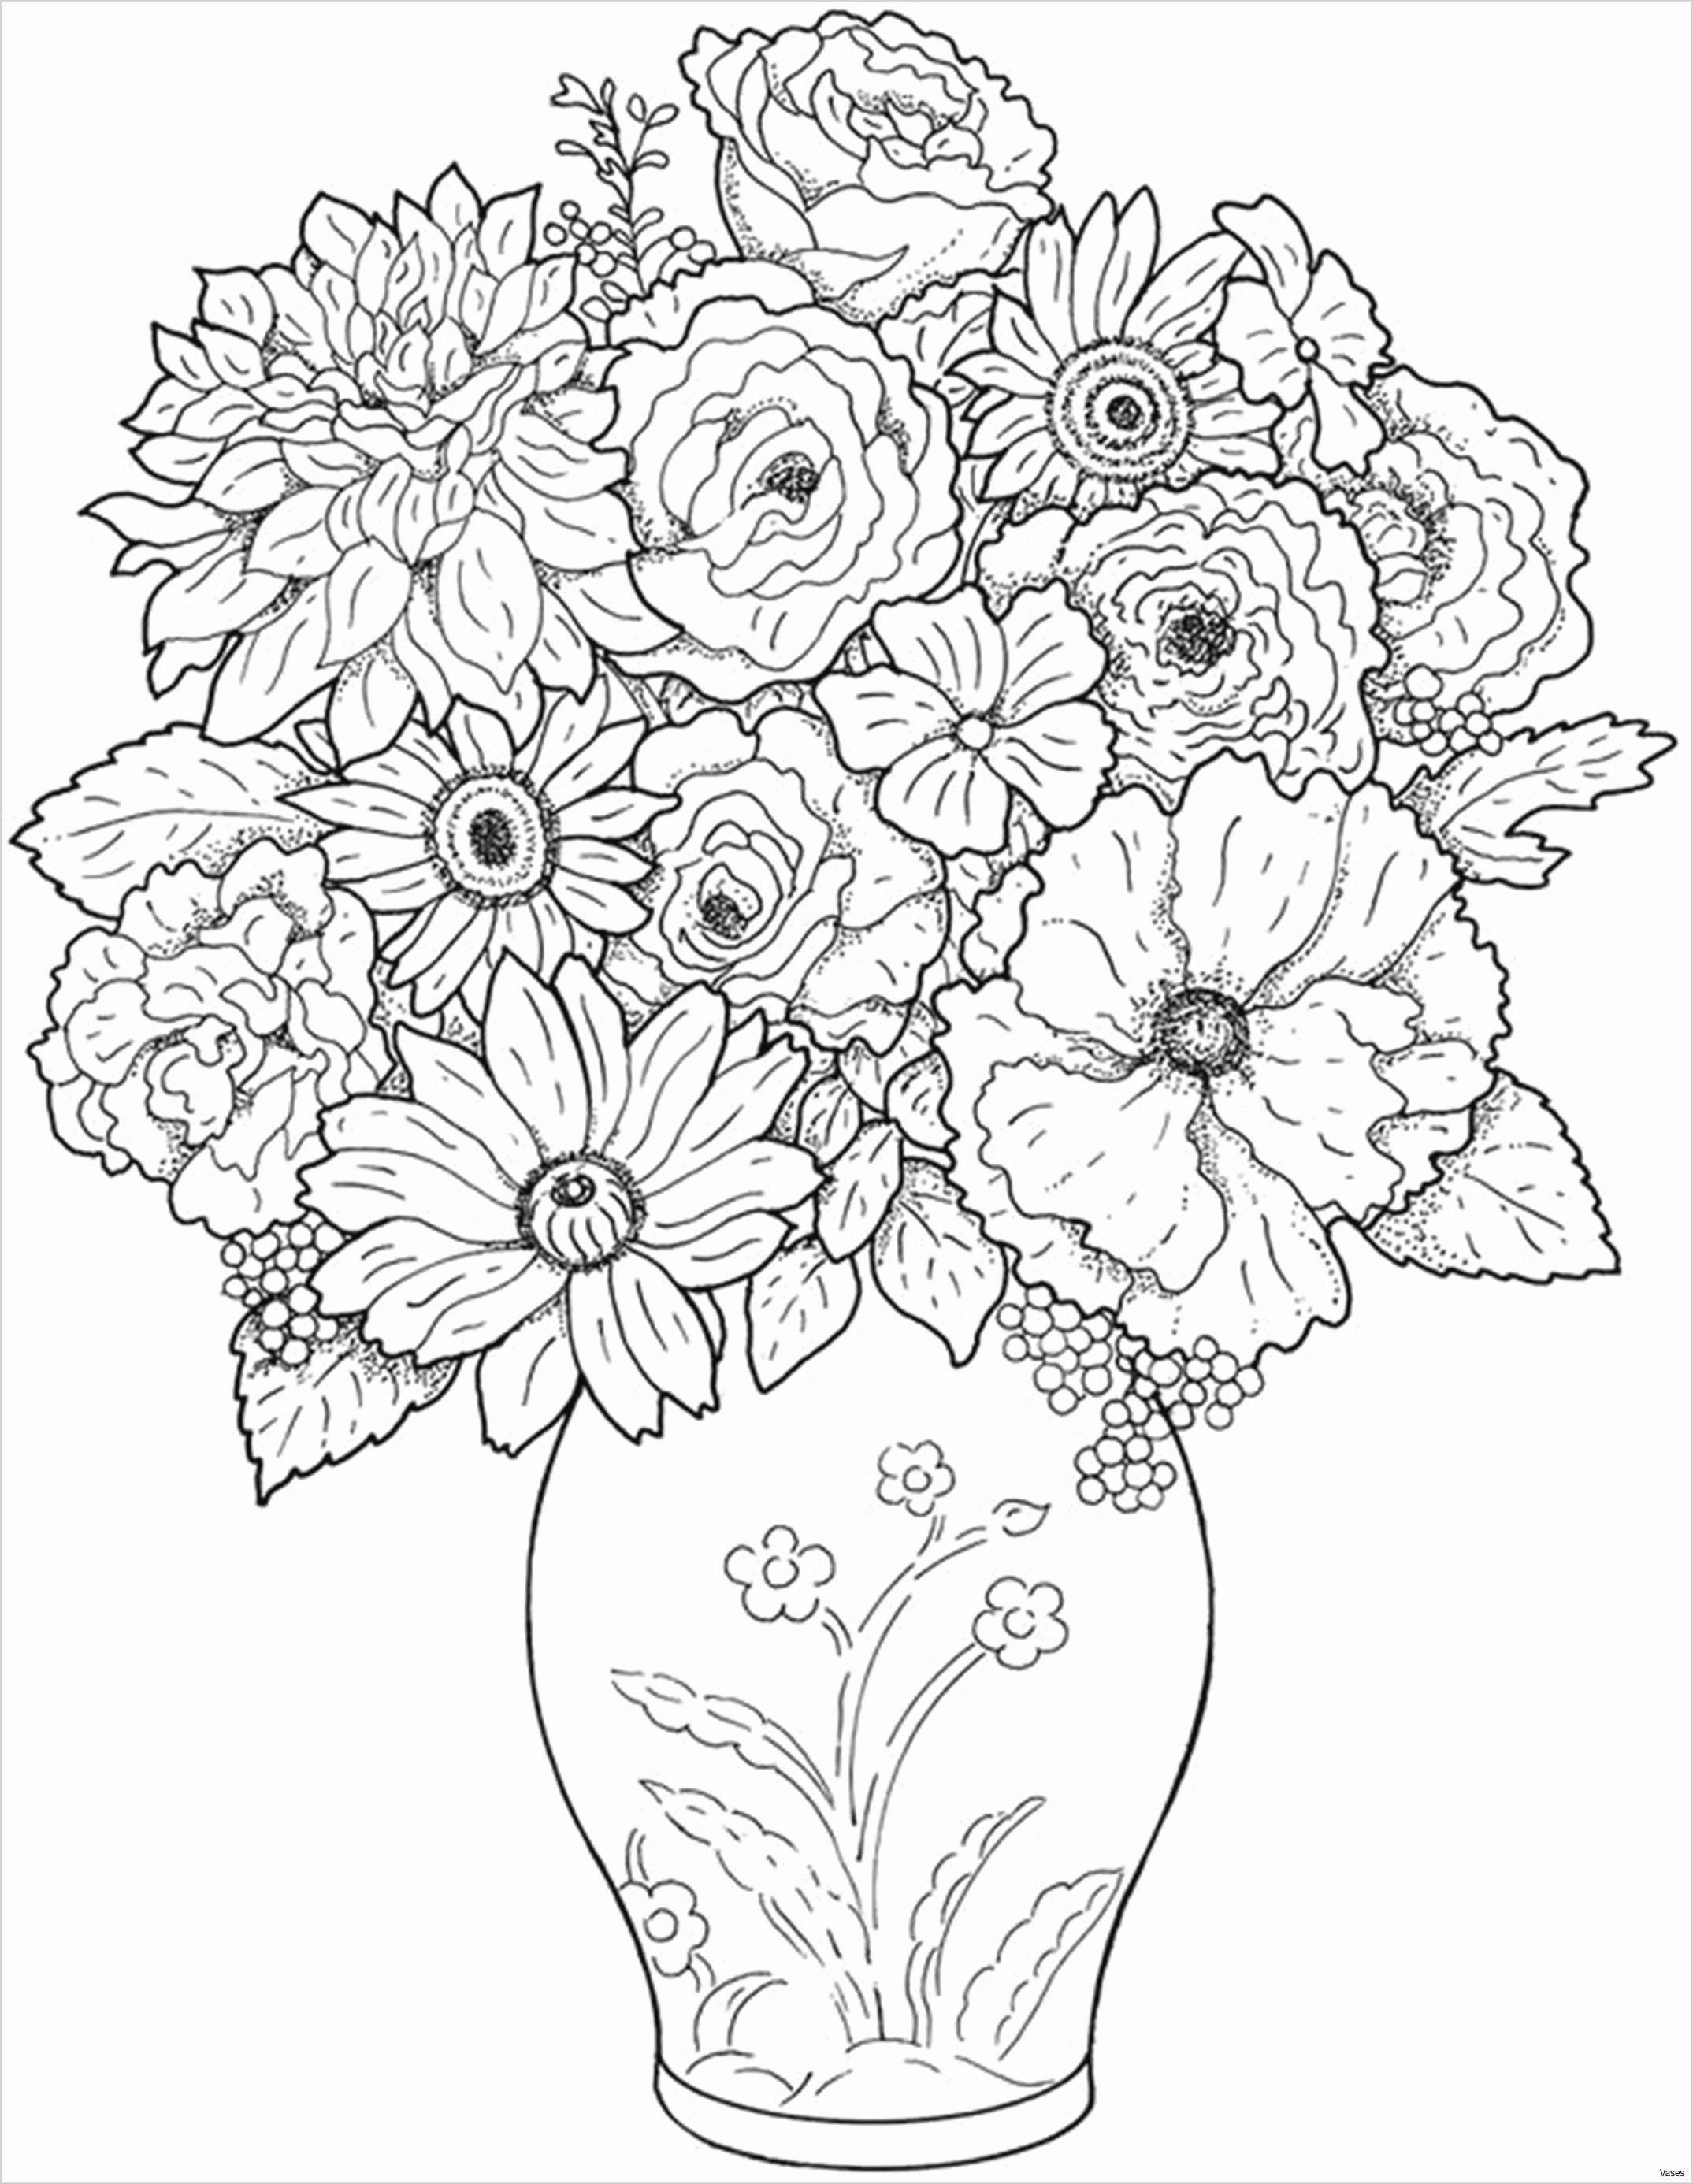 A Flower Coloring Page Luxury Unique Flower Coloring Pages For Adults In 2020 Printable Flower Coloring Pages Detailed Coloring Pages Butterfly Coloring Page